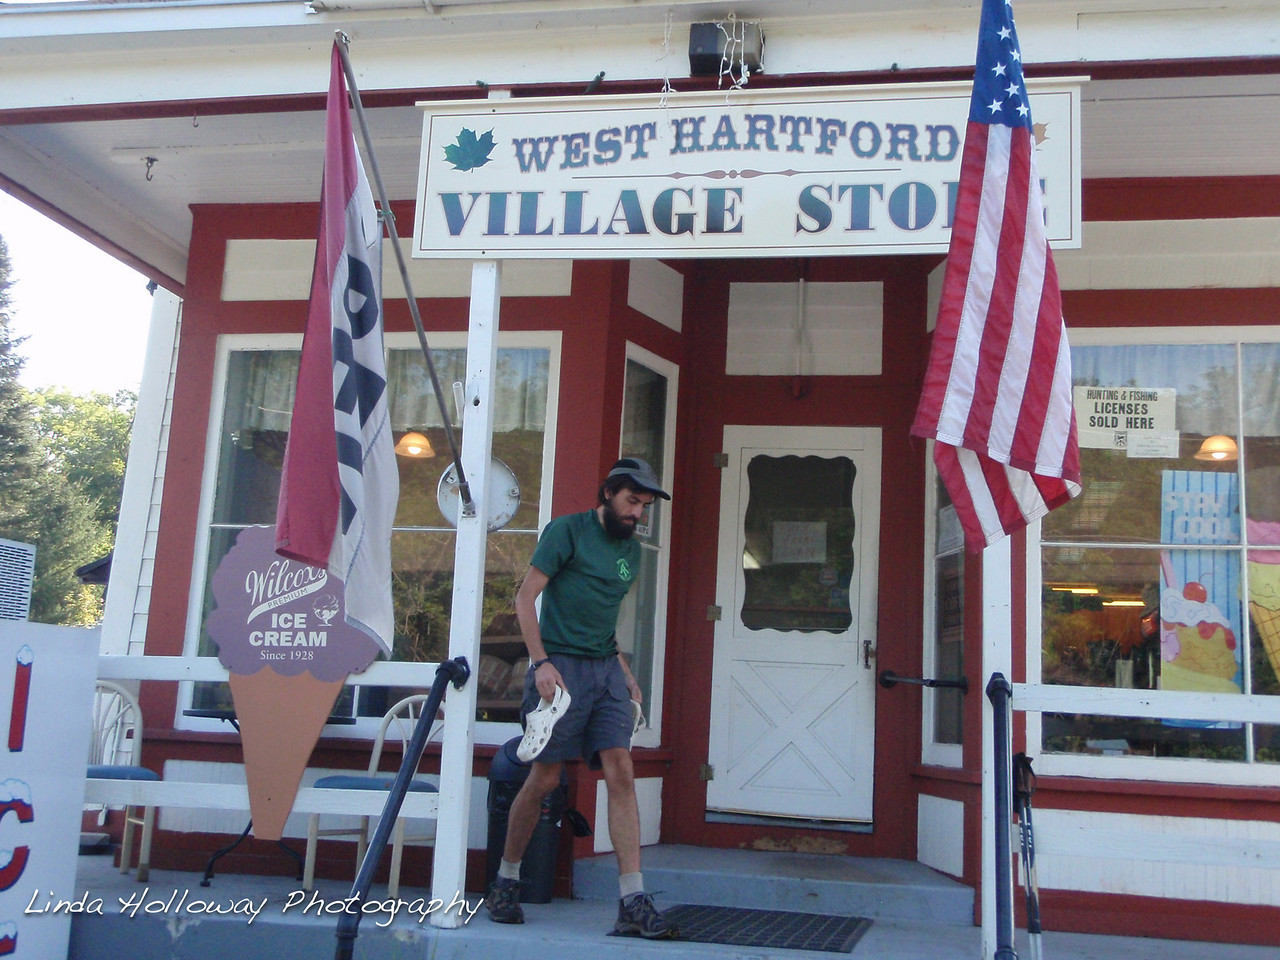 We stopped at the West Hartford Village Store.  It was a stop for other hikers also.